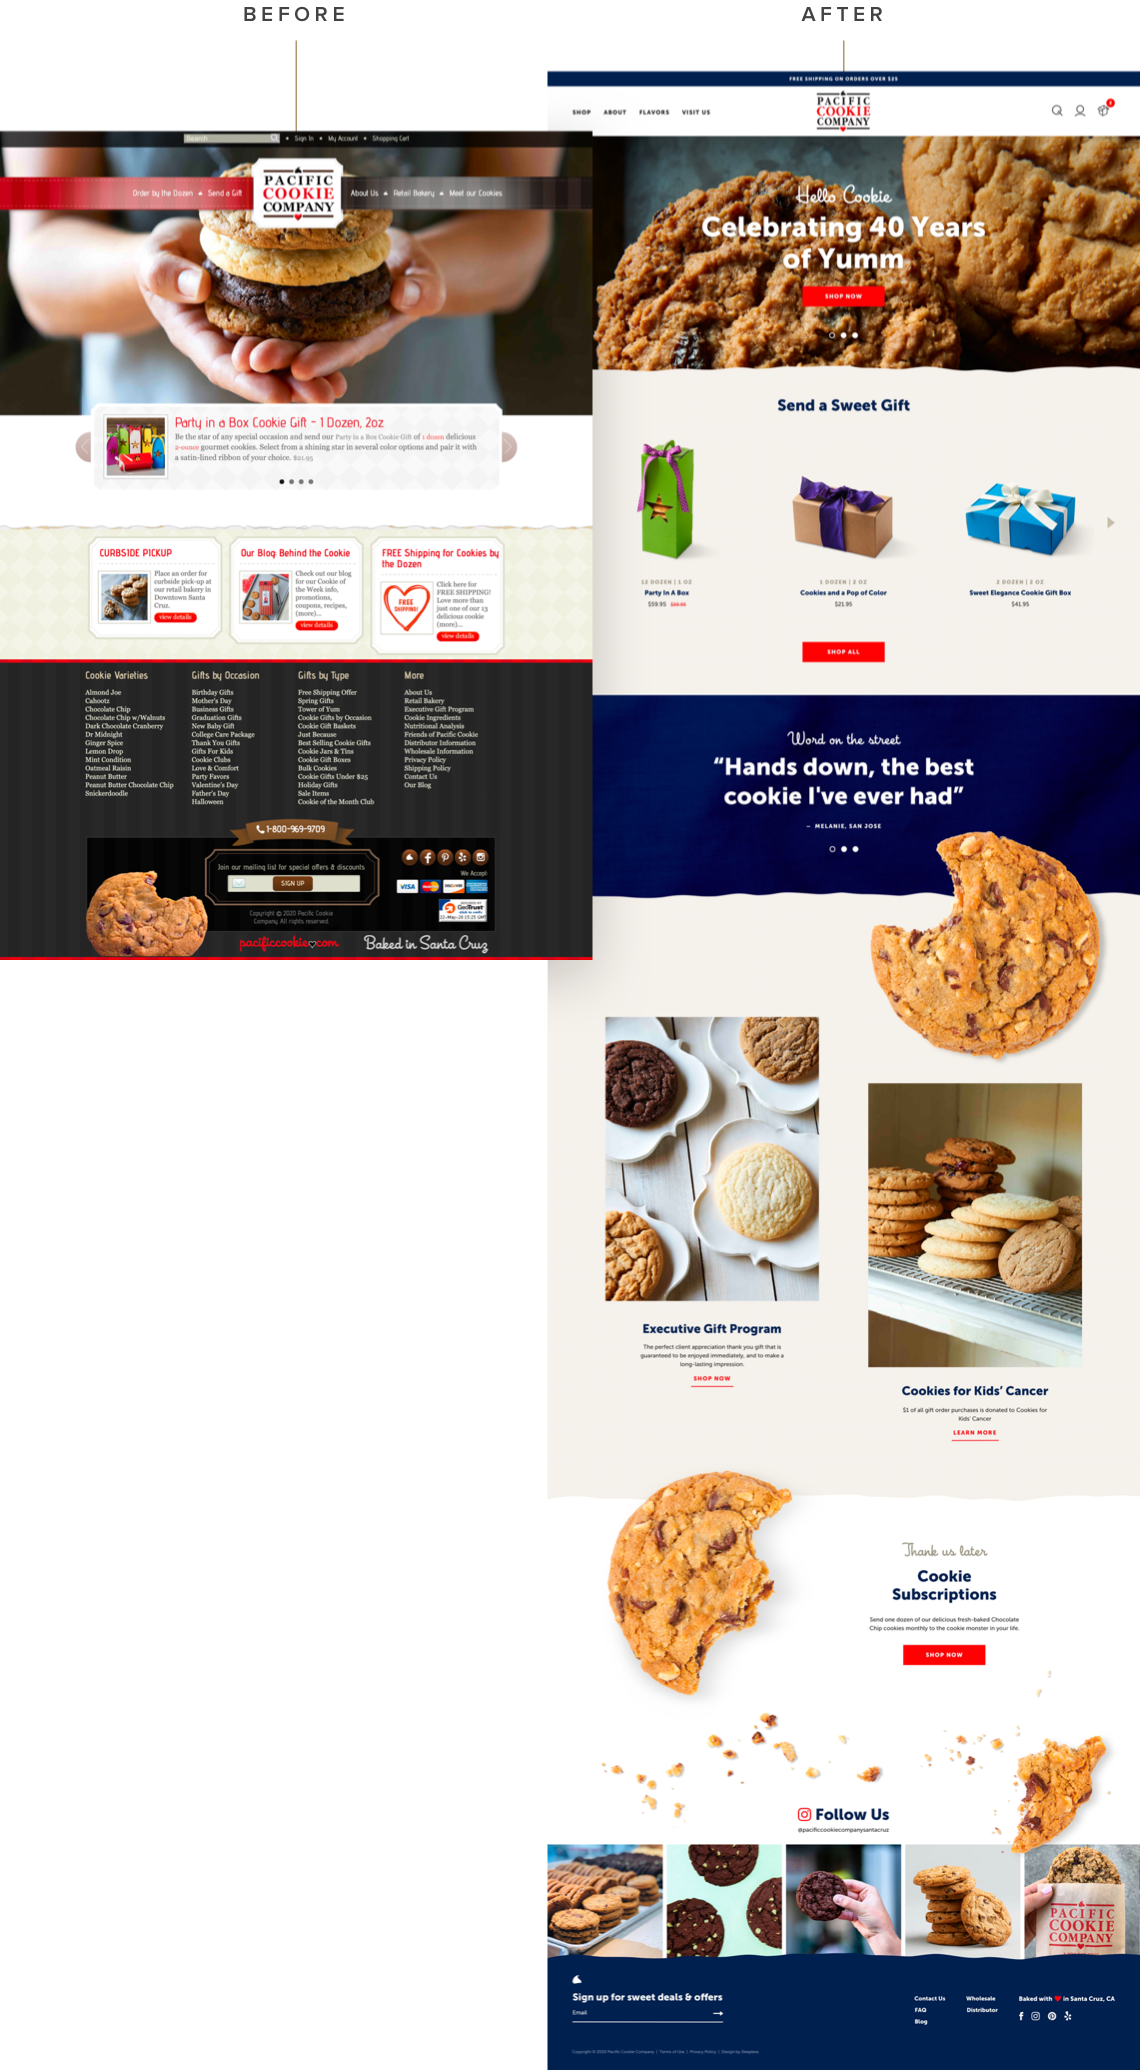 Pacific Cookie Company - Before & After